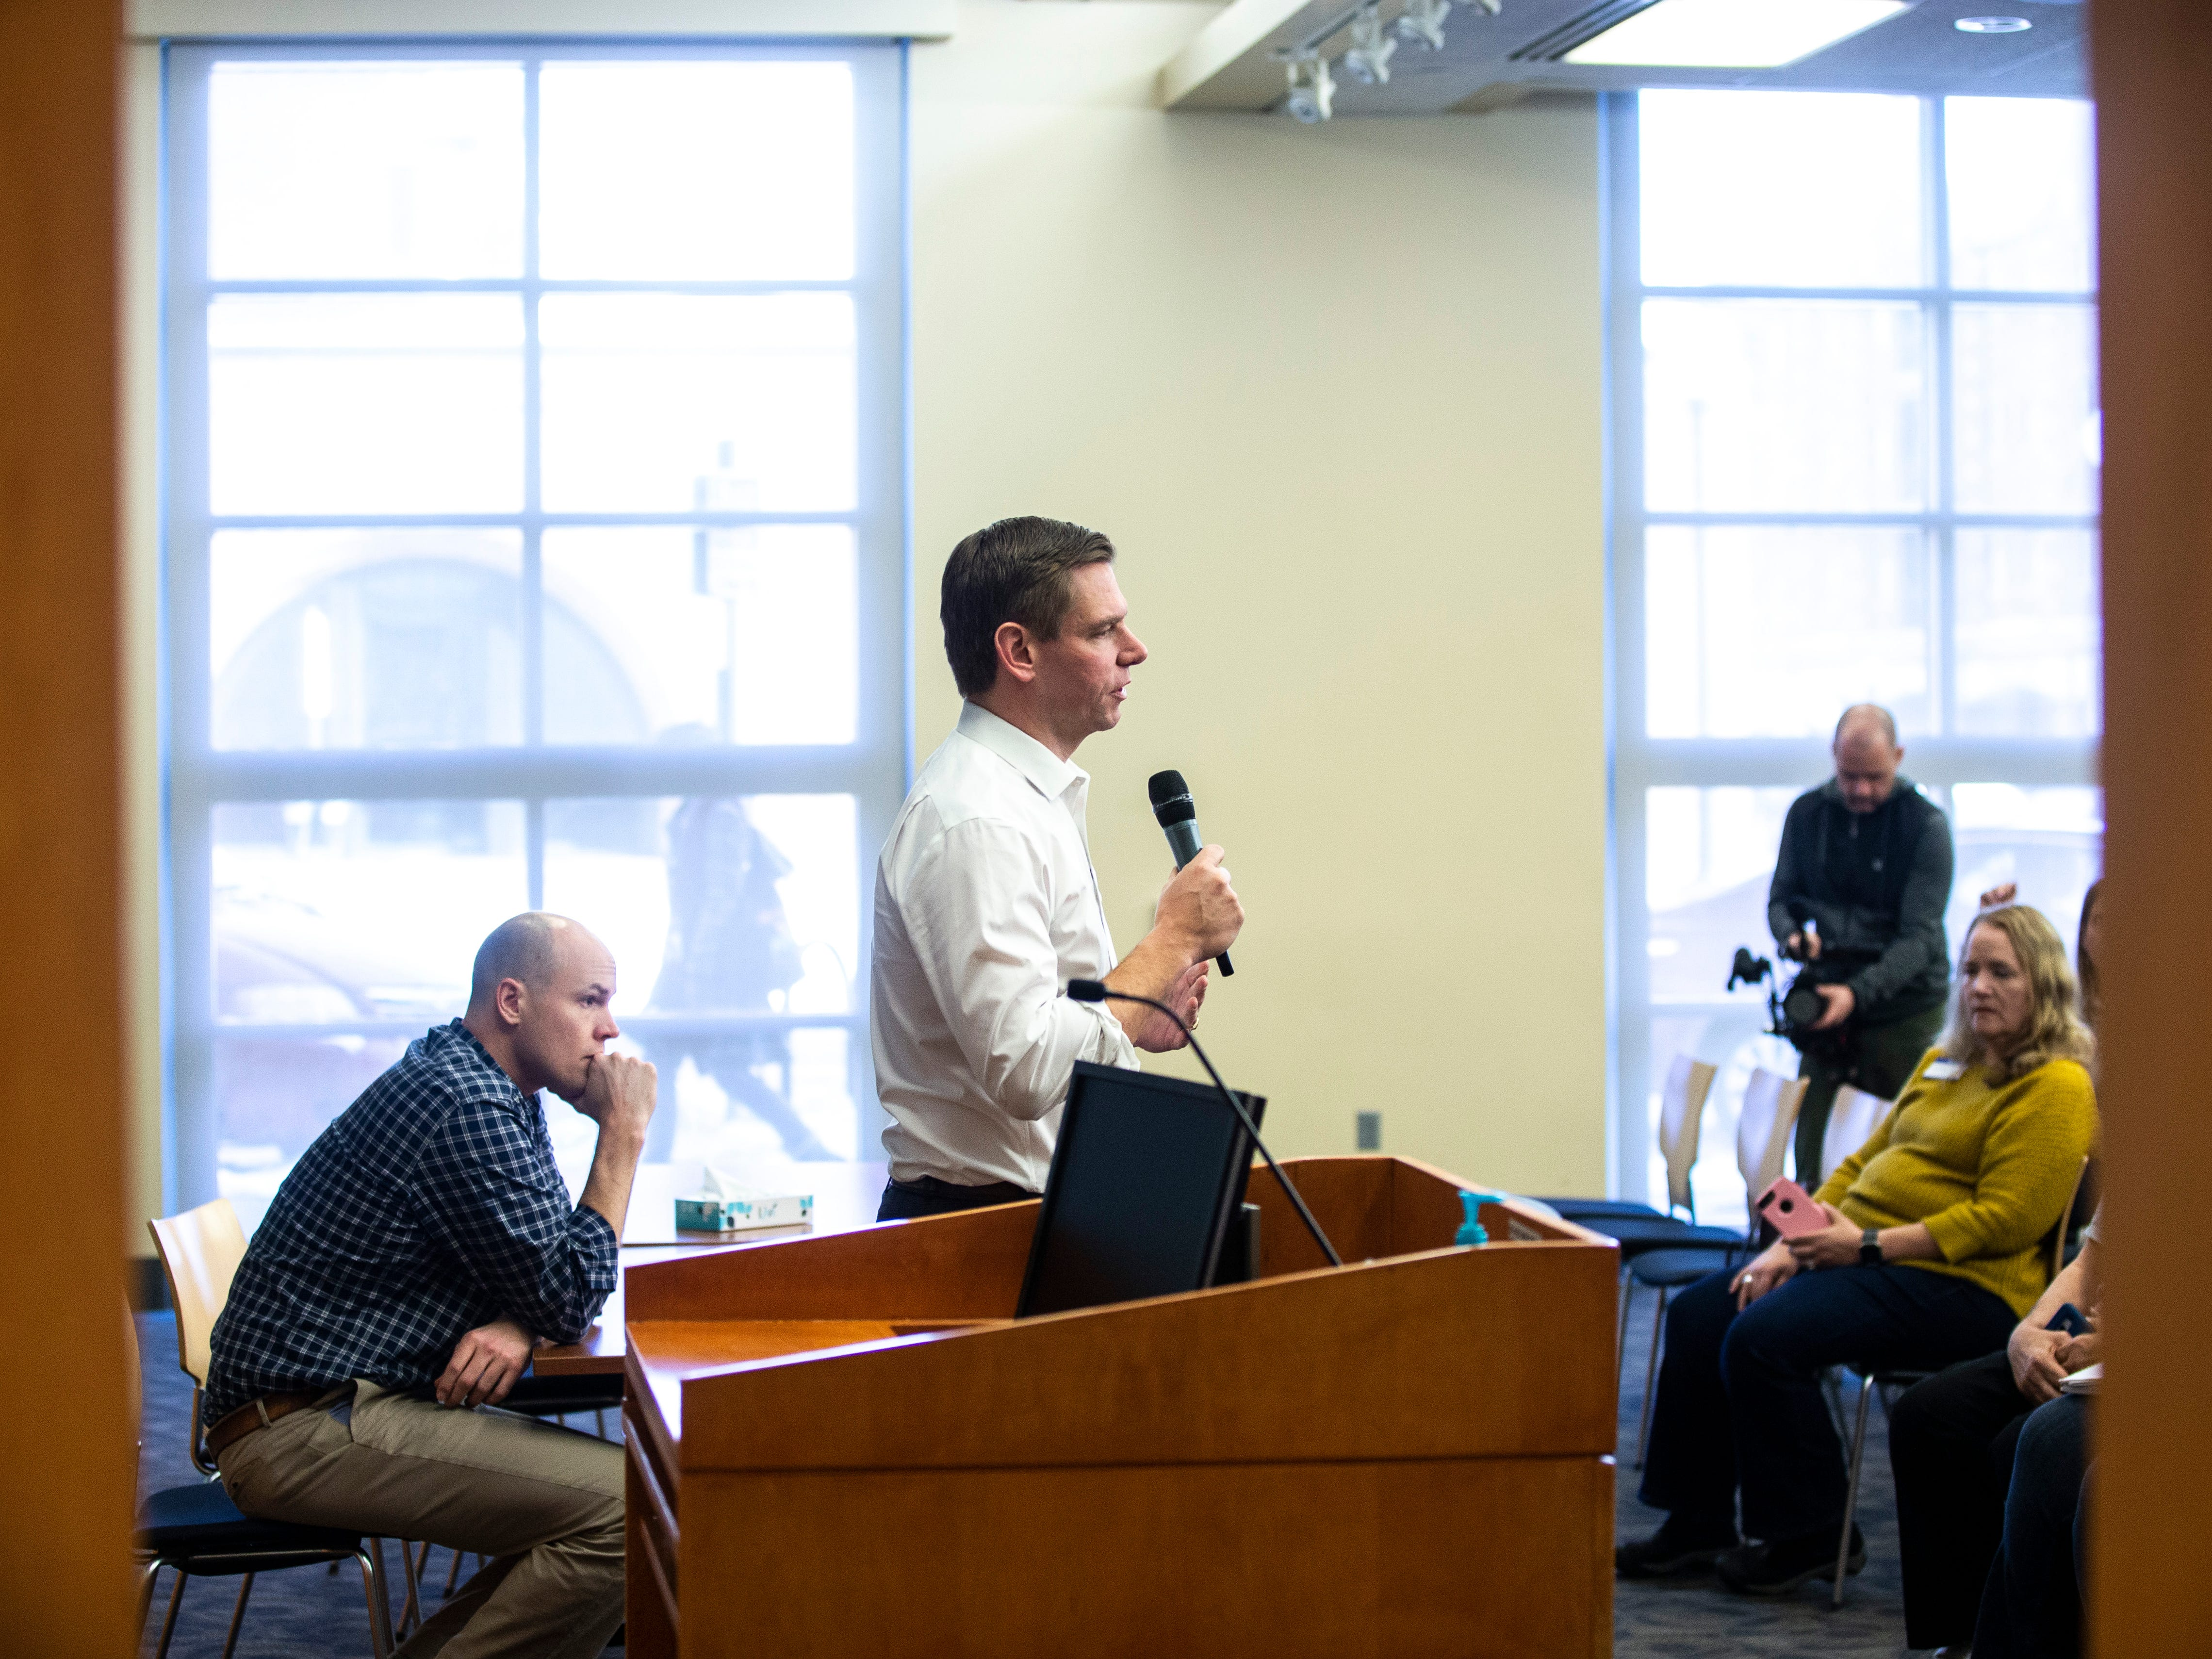 U.S. Rep. Eric Swalwell, D-Calif., speaks during a Working Hero Iowa event on Monday, Feb. 18, 2019 at the Public Library in Iowa City, Iowa.